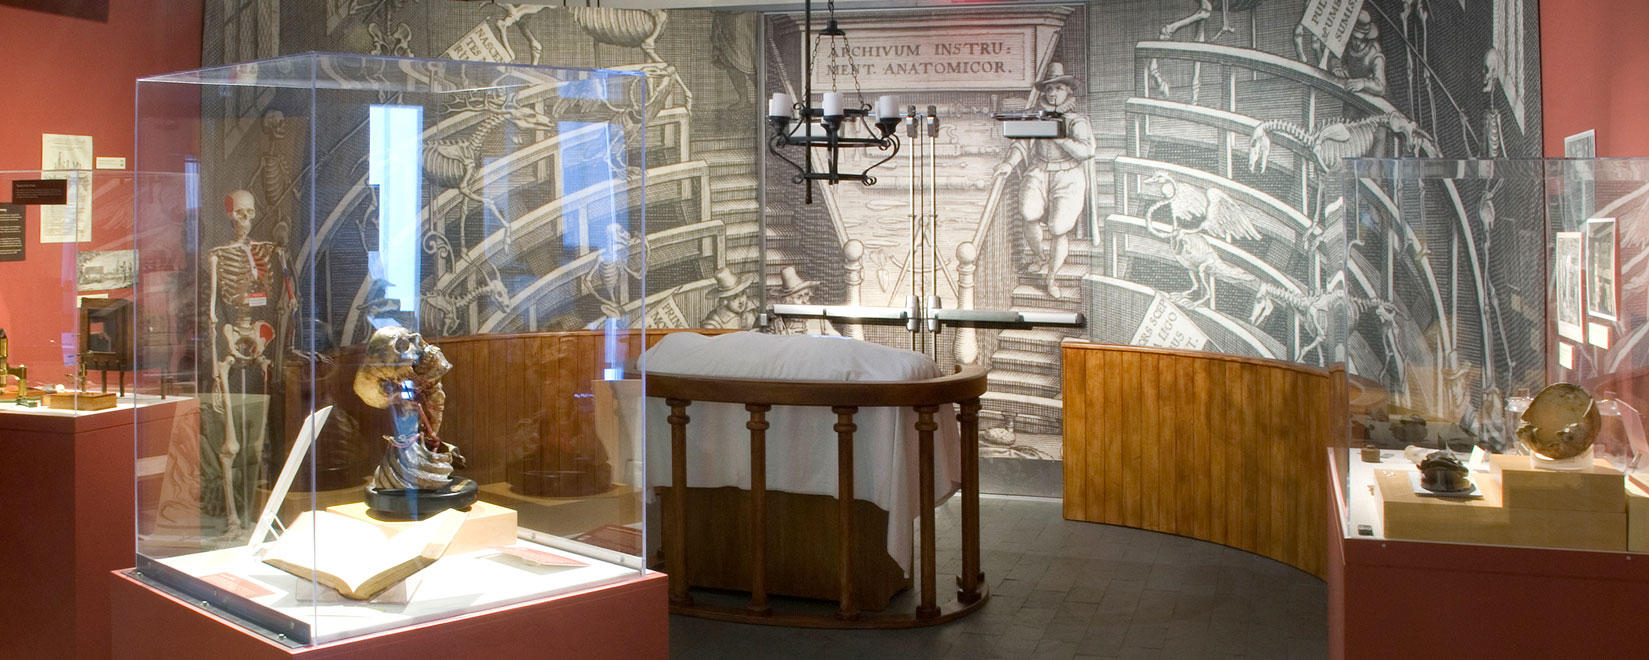 Anatomy Theatre in Gallery